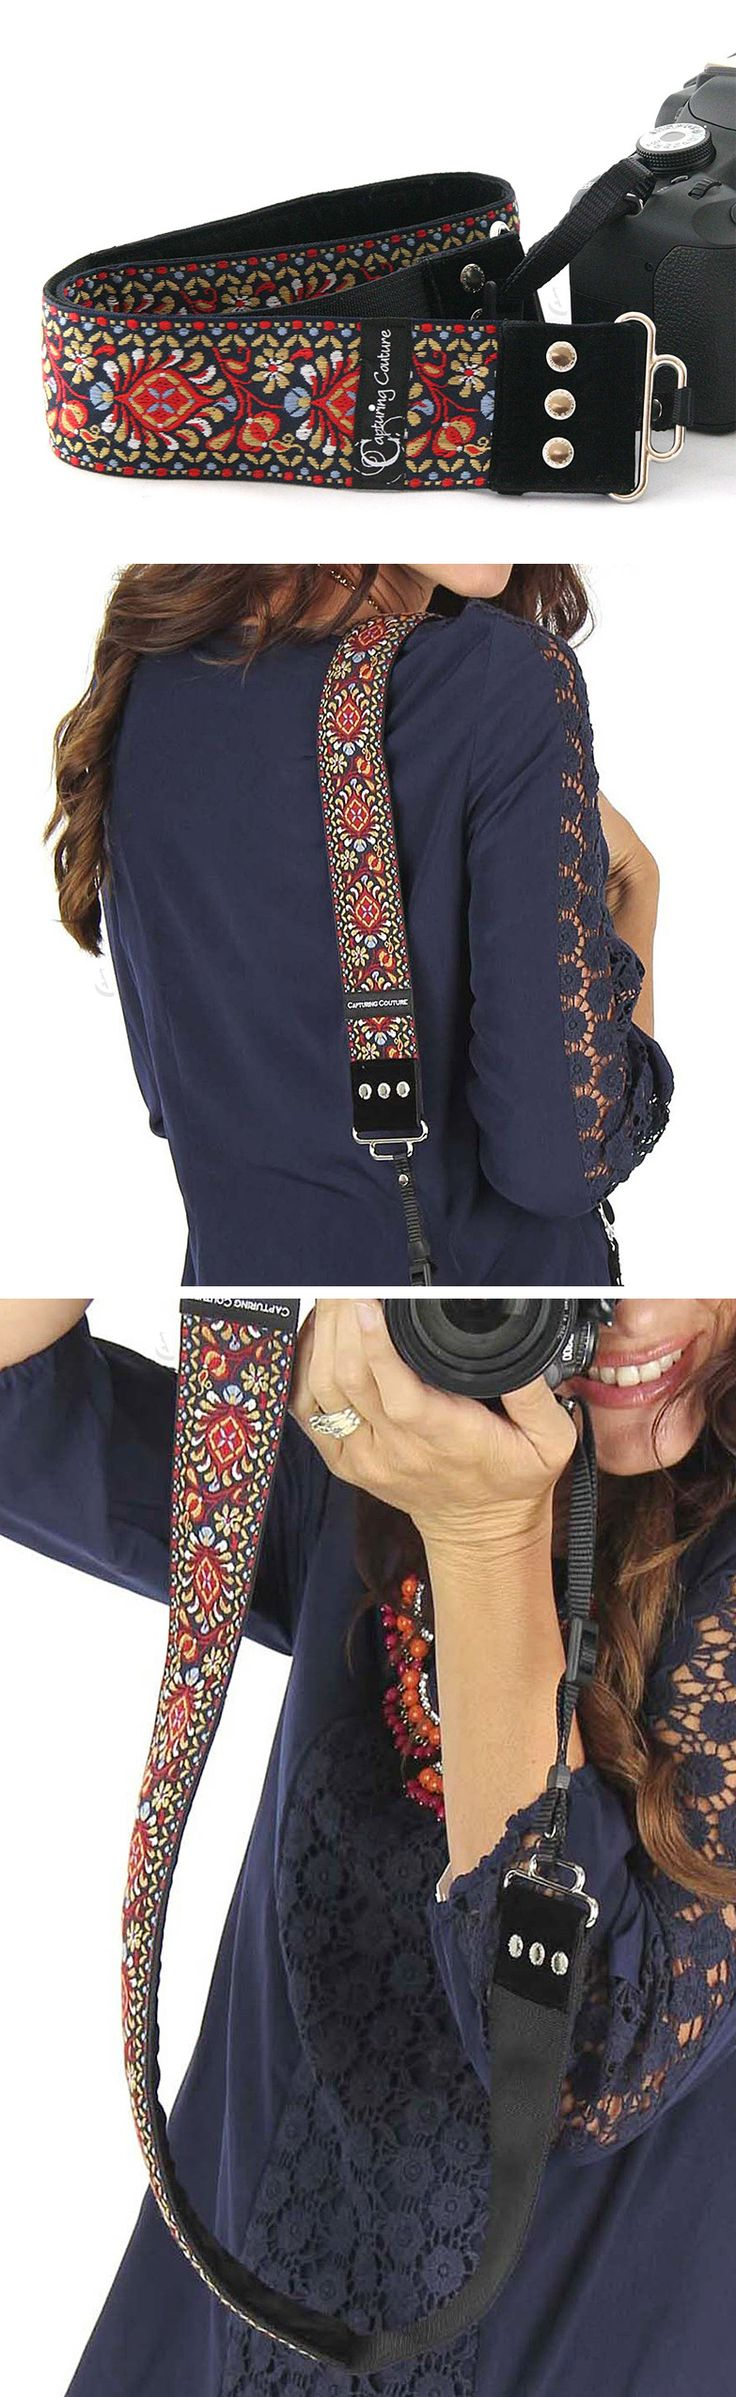 Patterned camera strap | great gift for female photographers